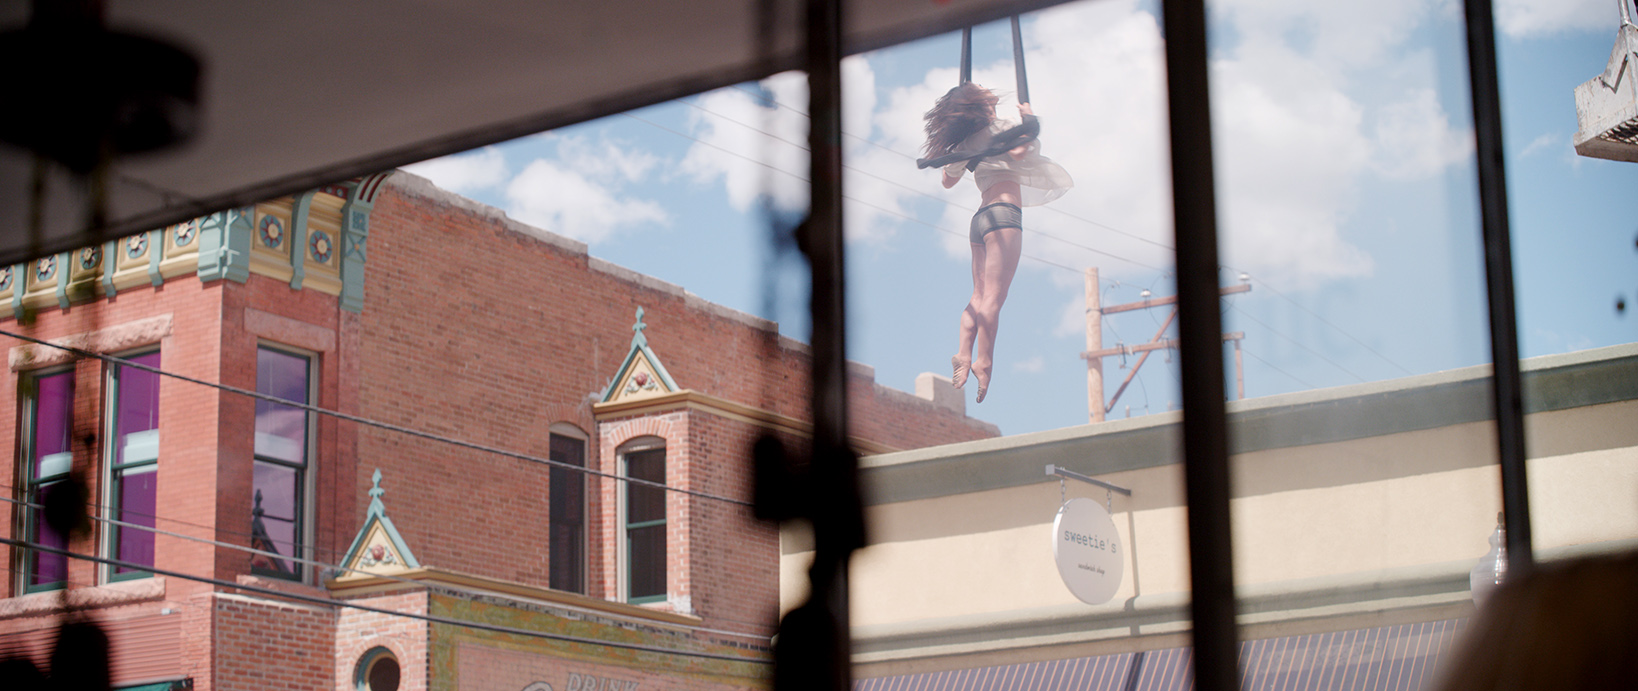 through other shop-smaller